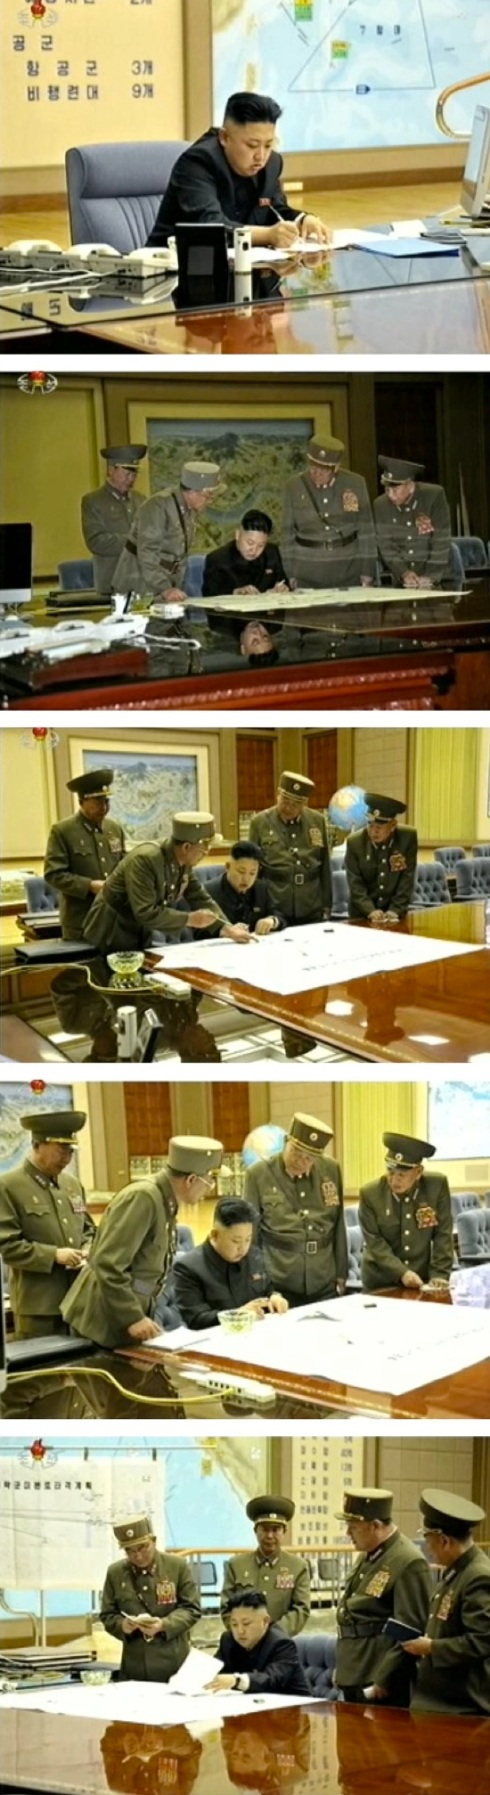 Kim Jong Un participates in an operational planning meeting in central Pyongyang on 29 March 2013 (Photos: KCTV screengrabs)